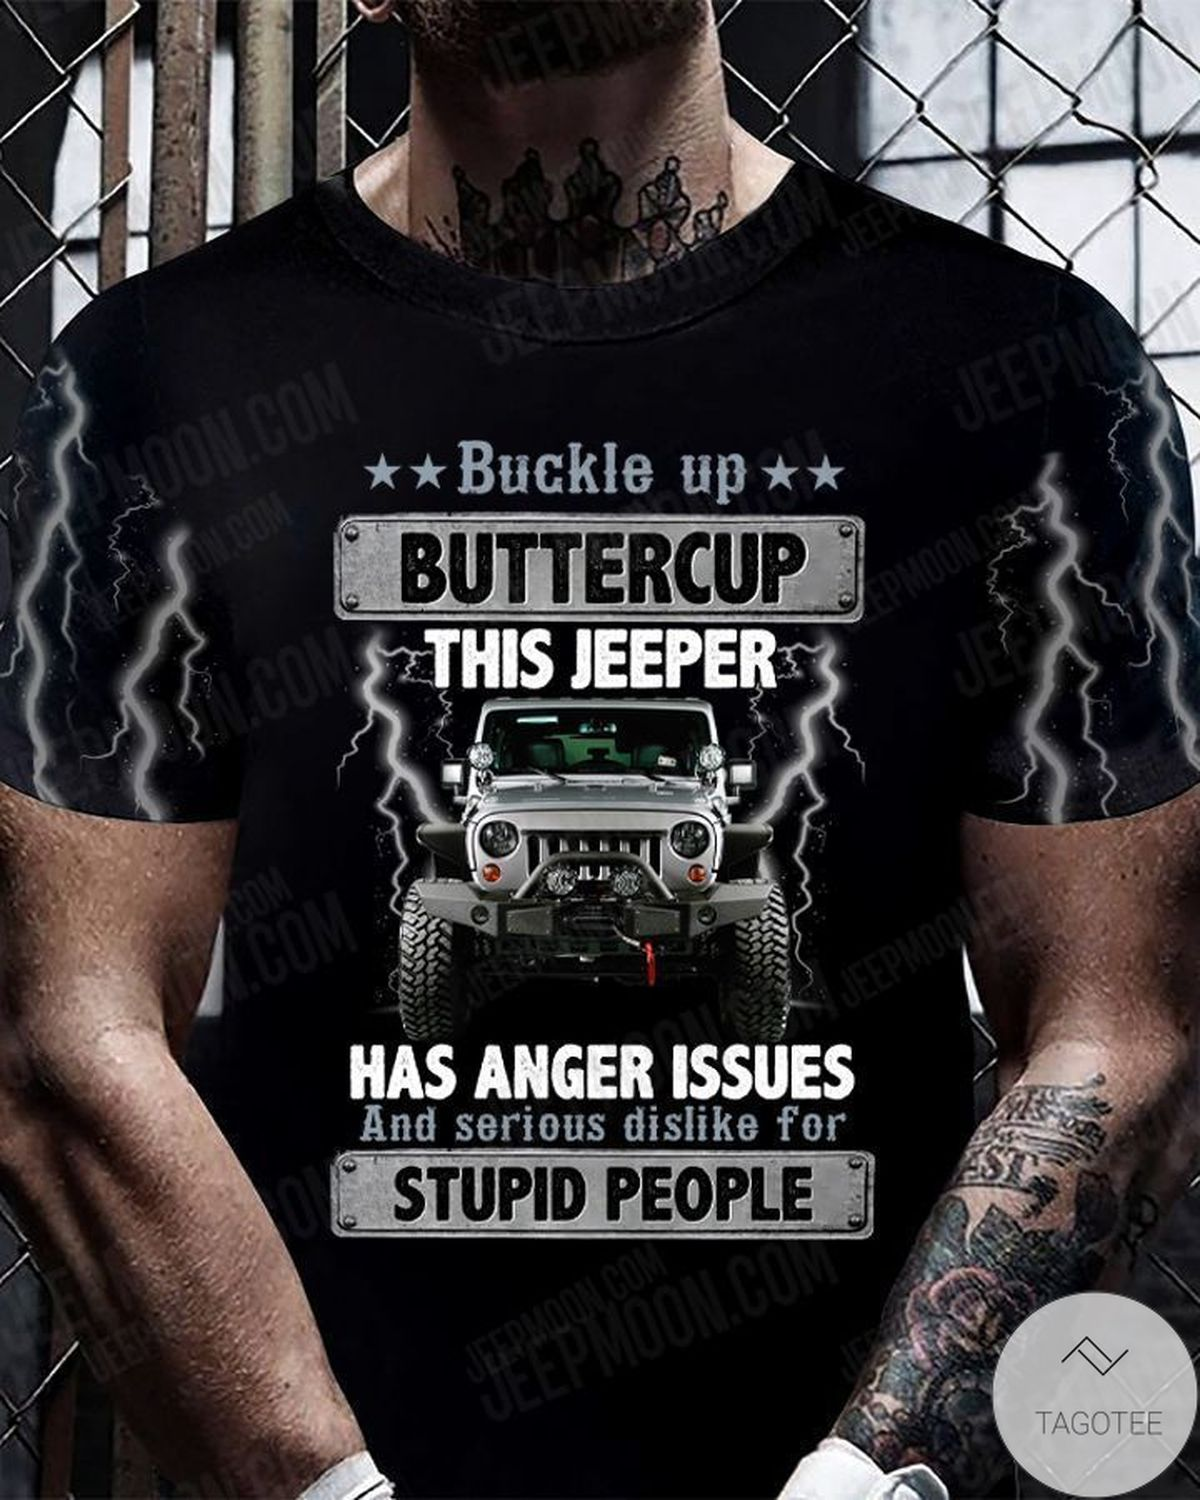 Buckle Up Buttercup This Jeeper Has Anger Issues T-Shirt